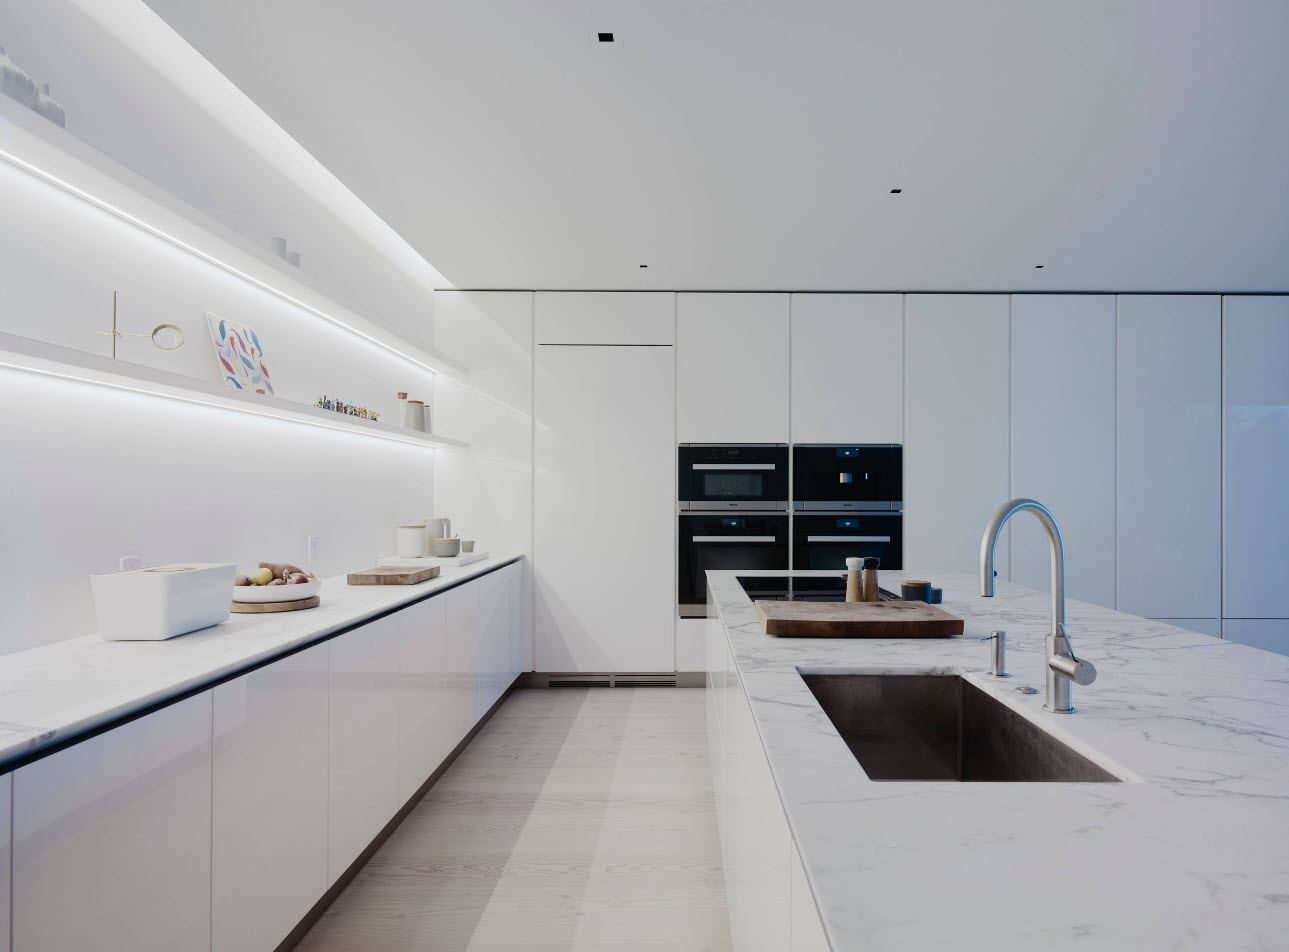 Hi-tech minimalism in the totally white kitchen with shelve-lighting